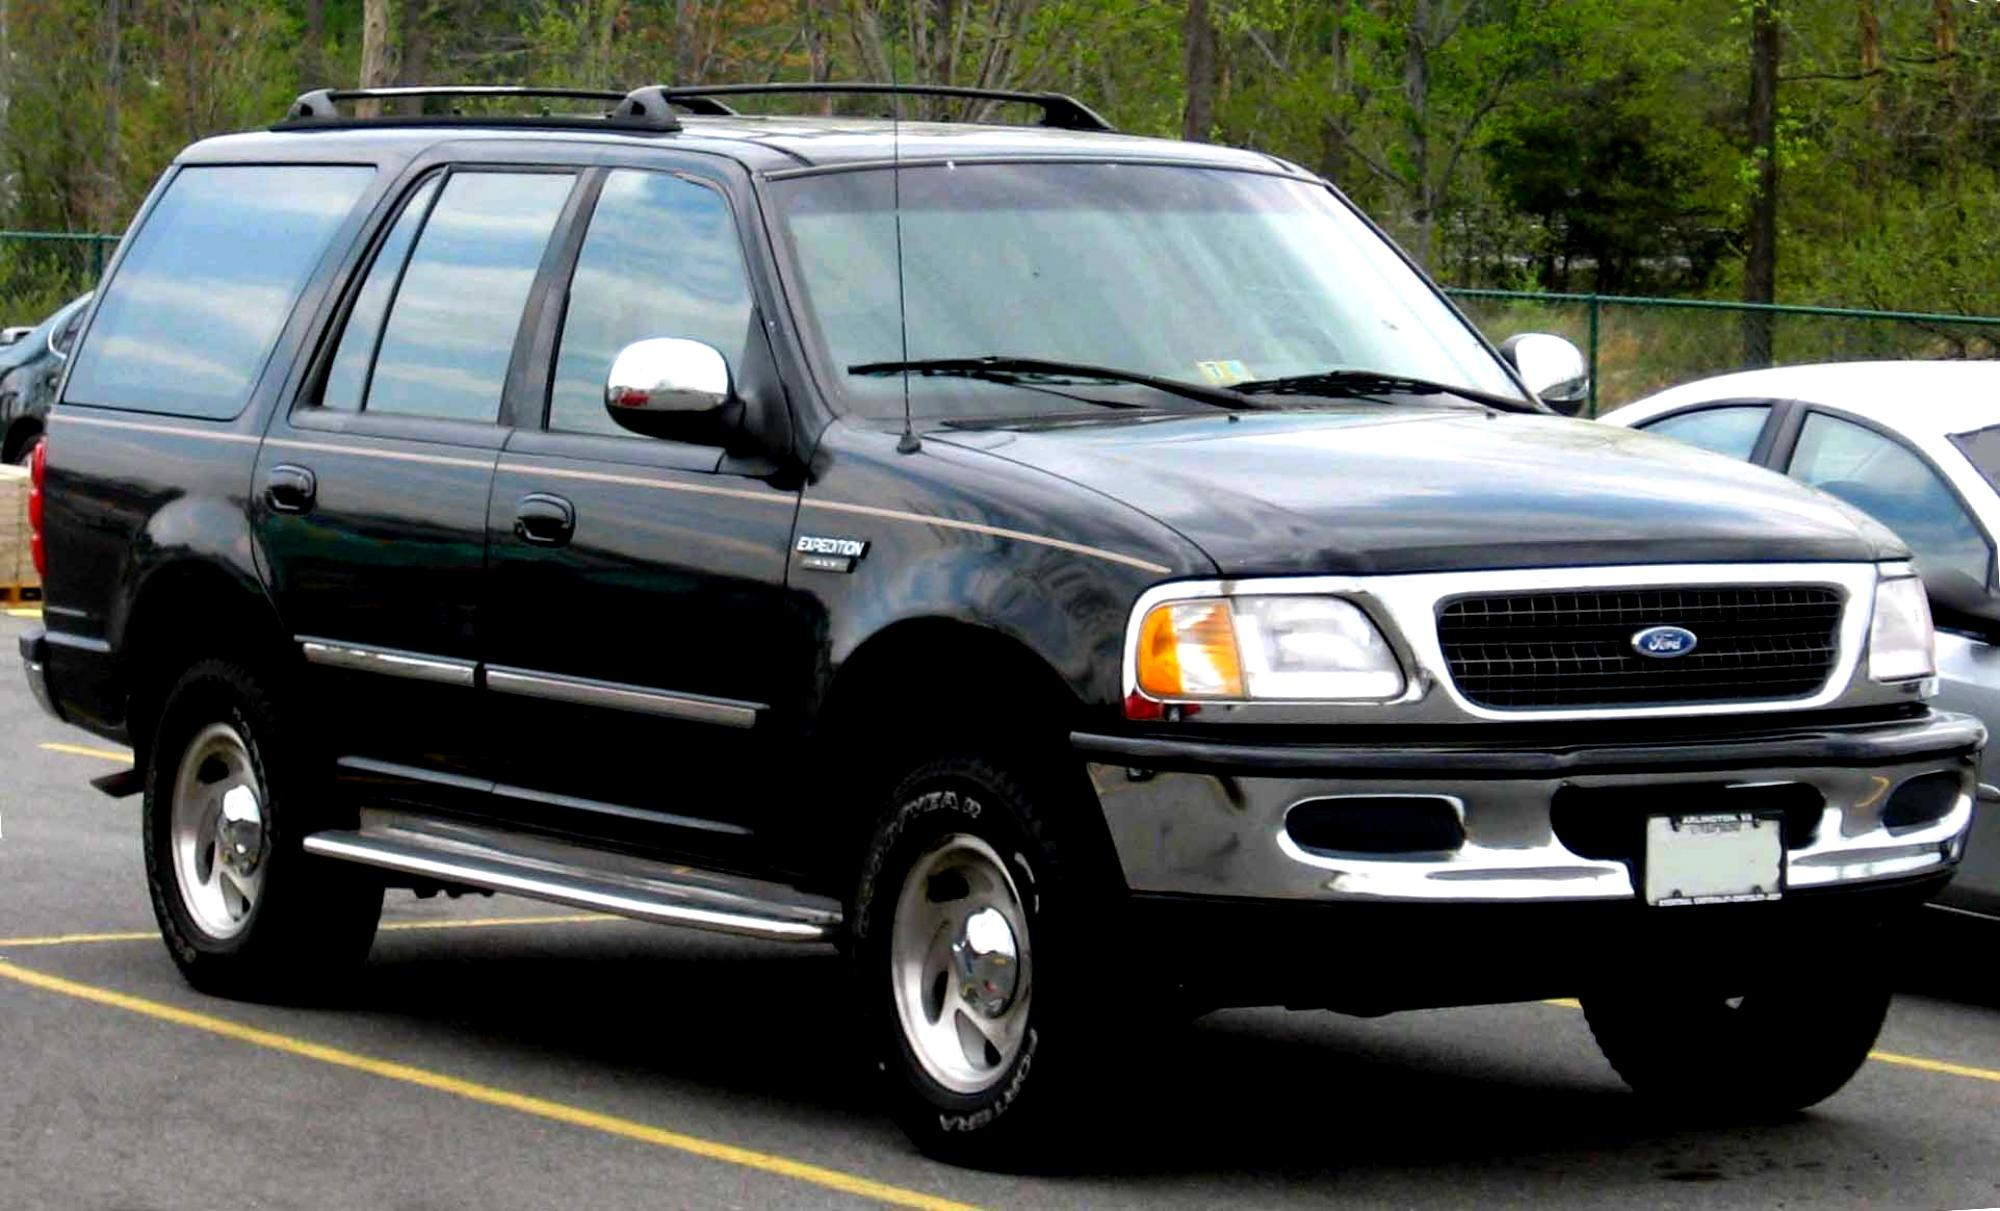 Ford Expedition 2002 #18